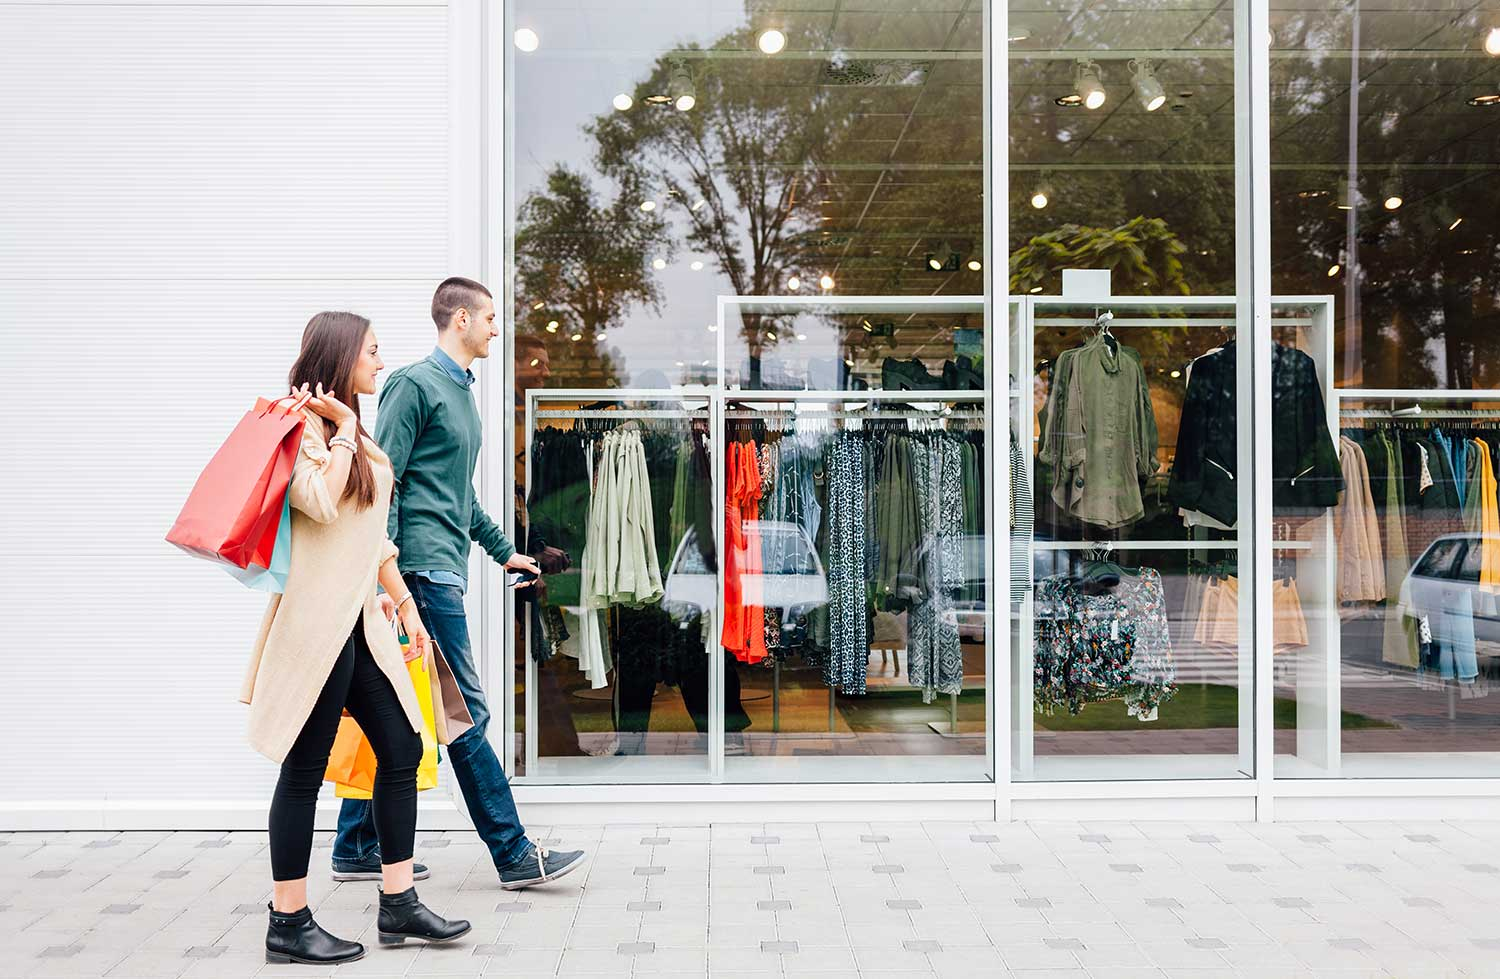 Retailers are increasingly turning back to the traditional storefront model